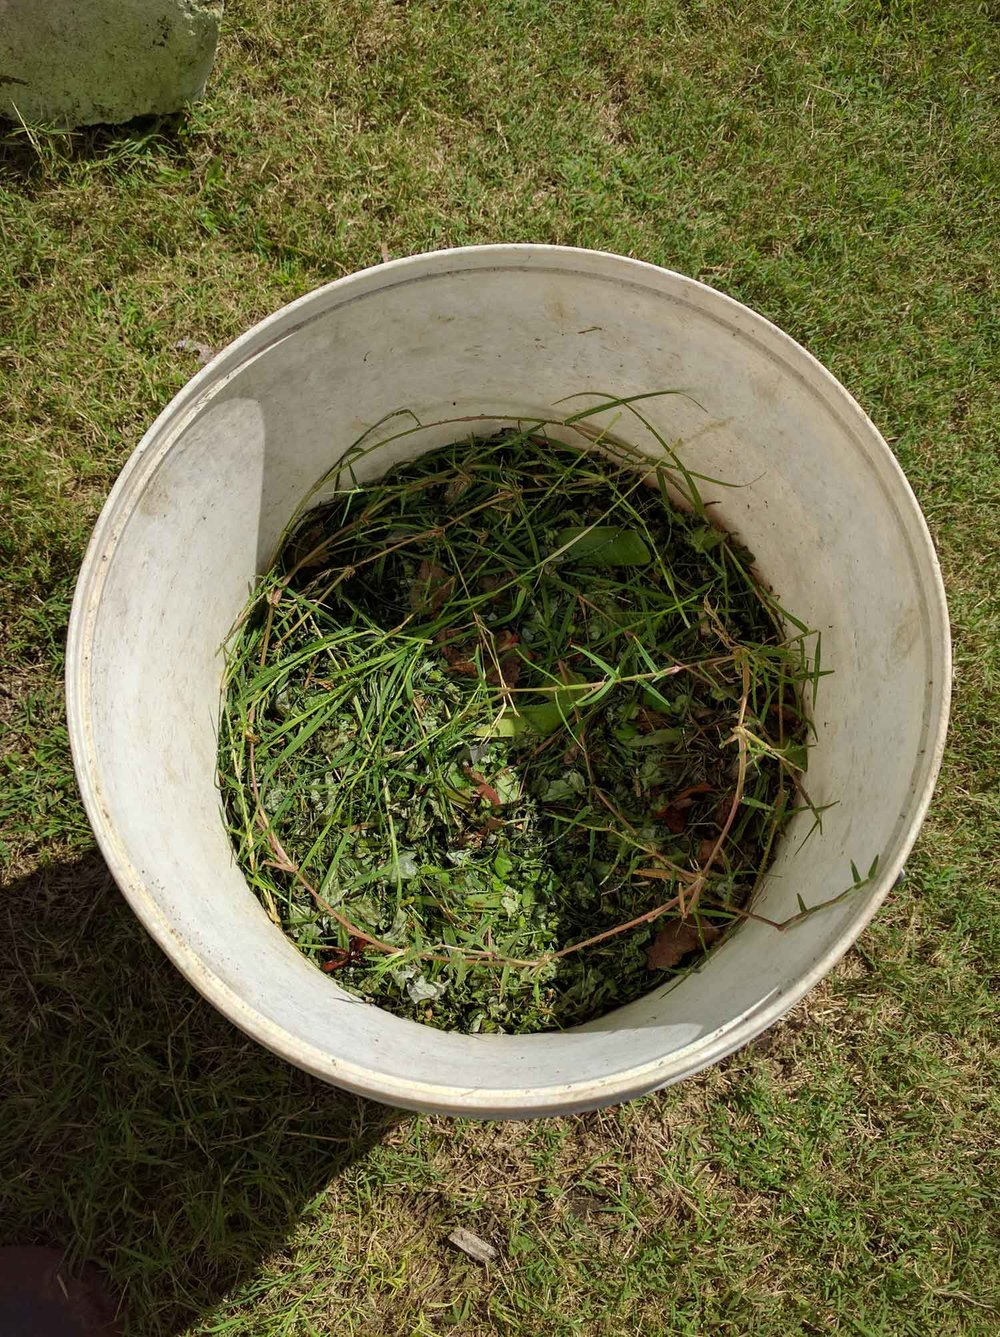 Bucket with clippings.